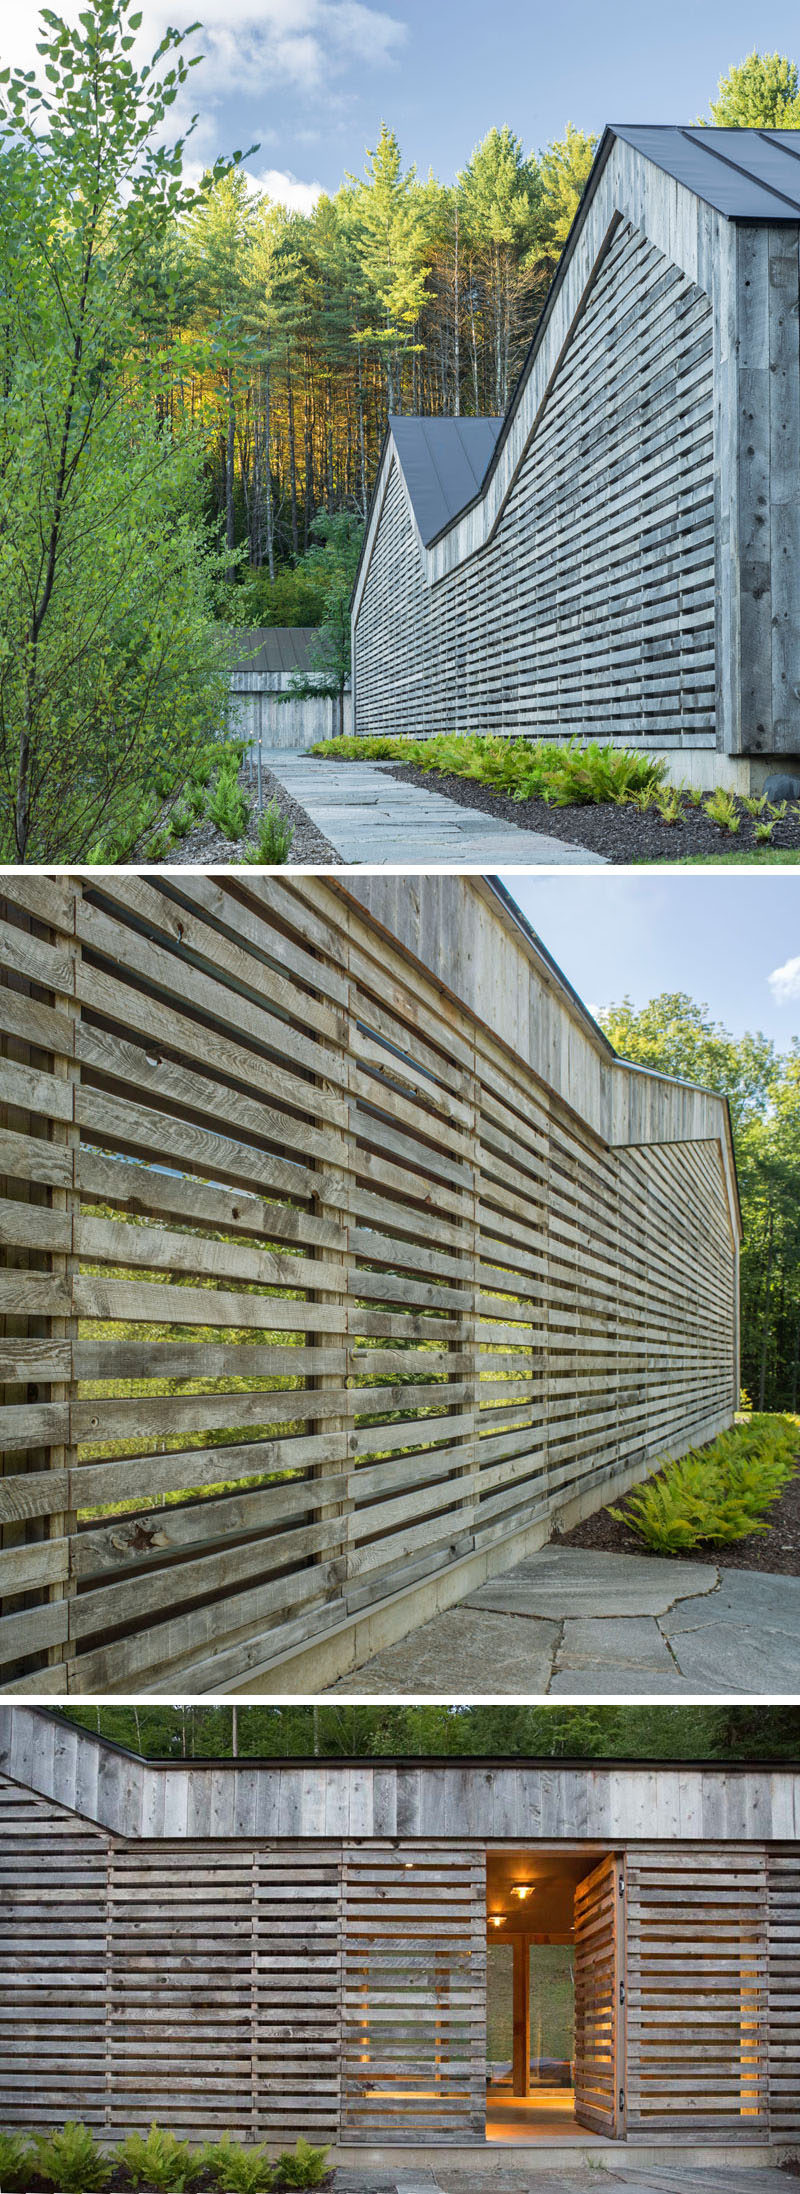 This modern house is clad in a siding composed of re-purposed snow fencing, so that it already has the natural beauty of the weathered boards. The front entrance is hidden away within the siding, making it almost invisible when walking past, with only a small stone path telling you where it is.